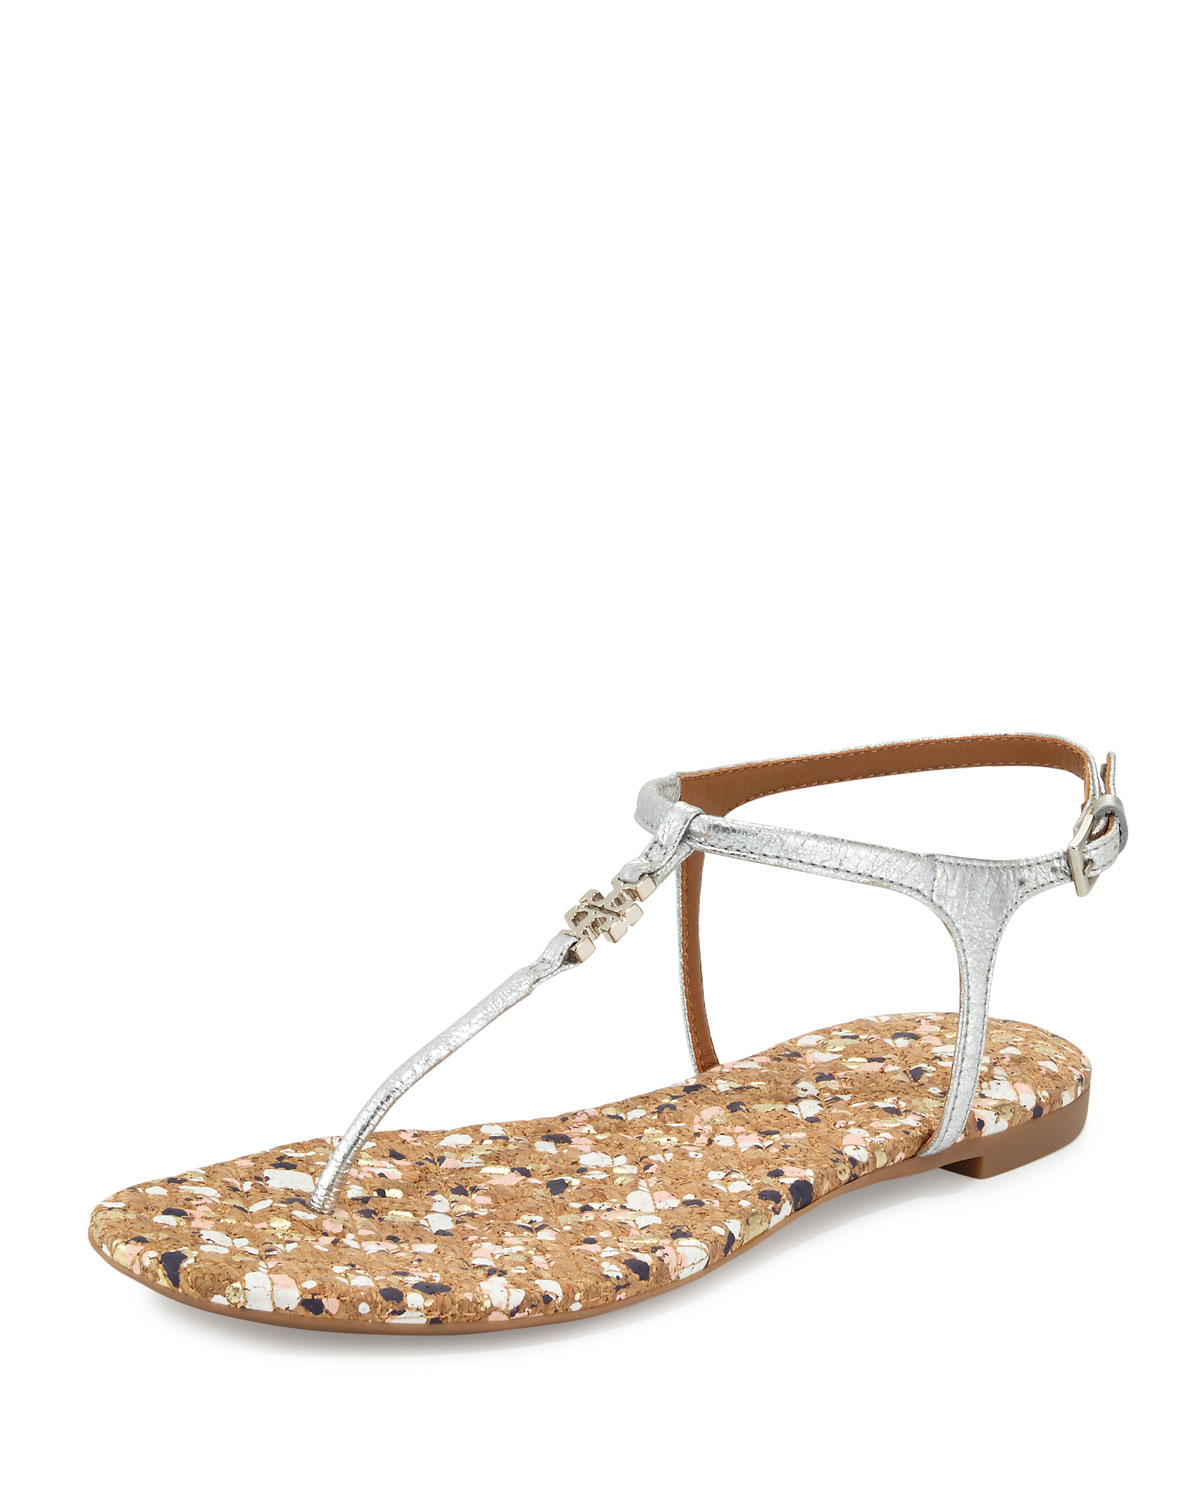 ed8cb5e56 Tory Burch Marion Confetti Quilted T-Strap Sandal